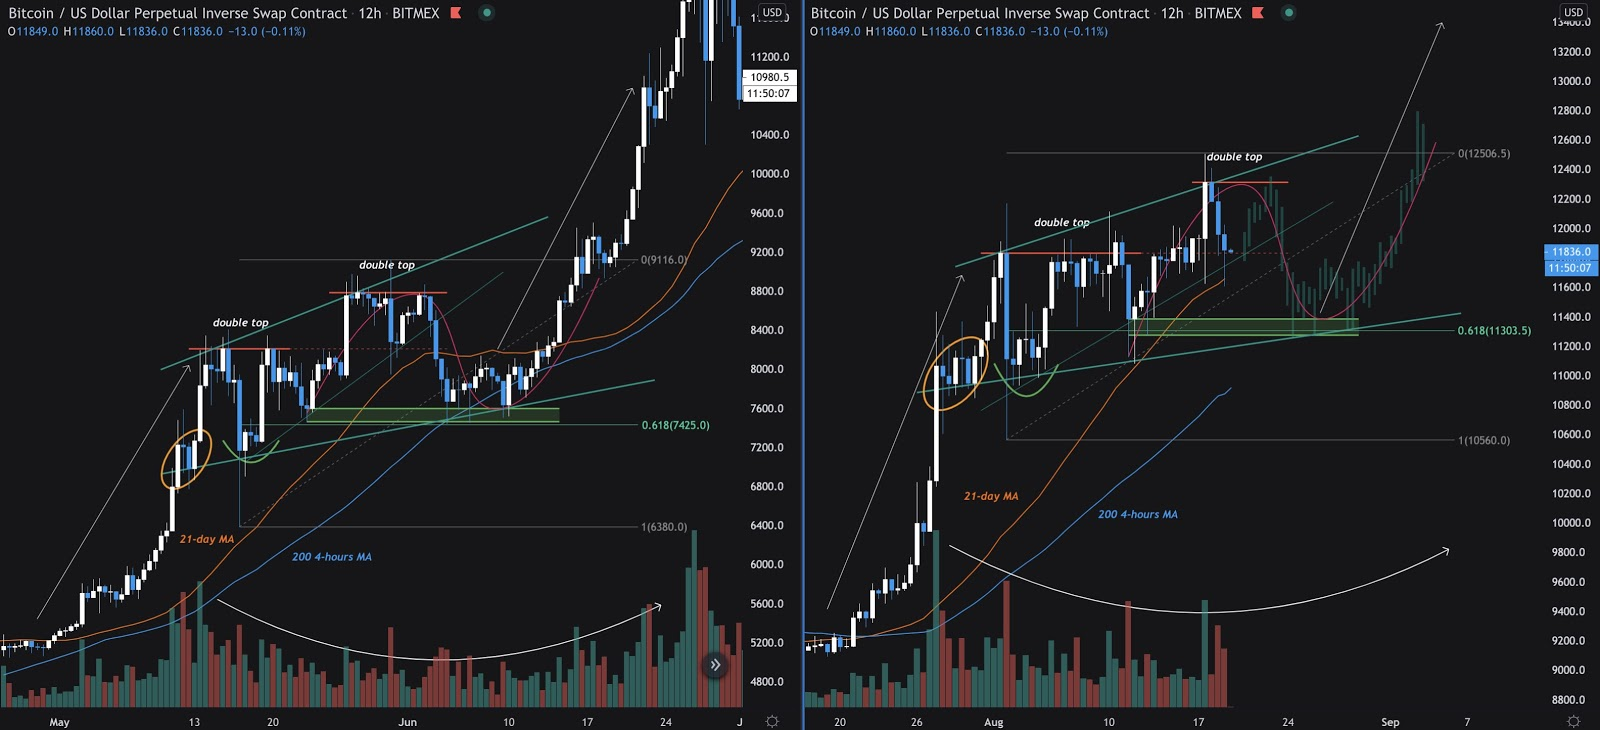 Bitcoin price cycle fractals